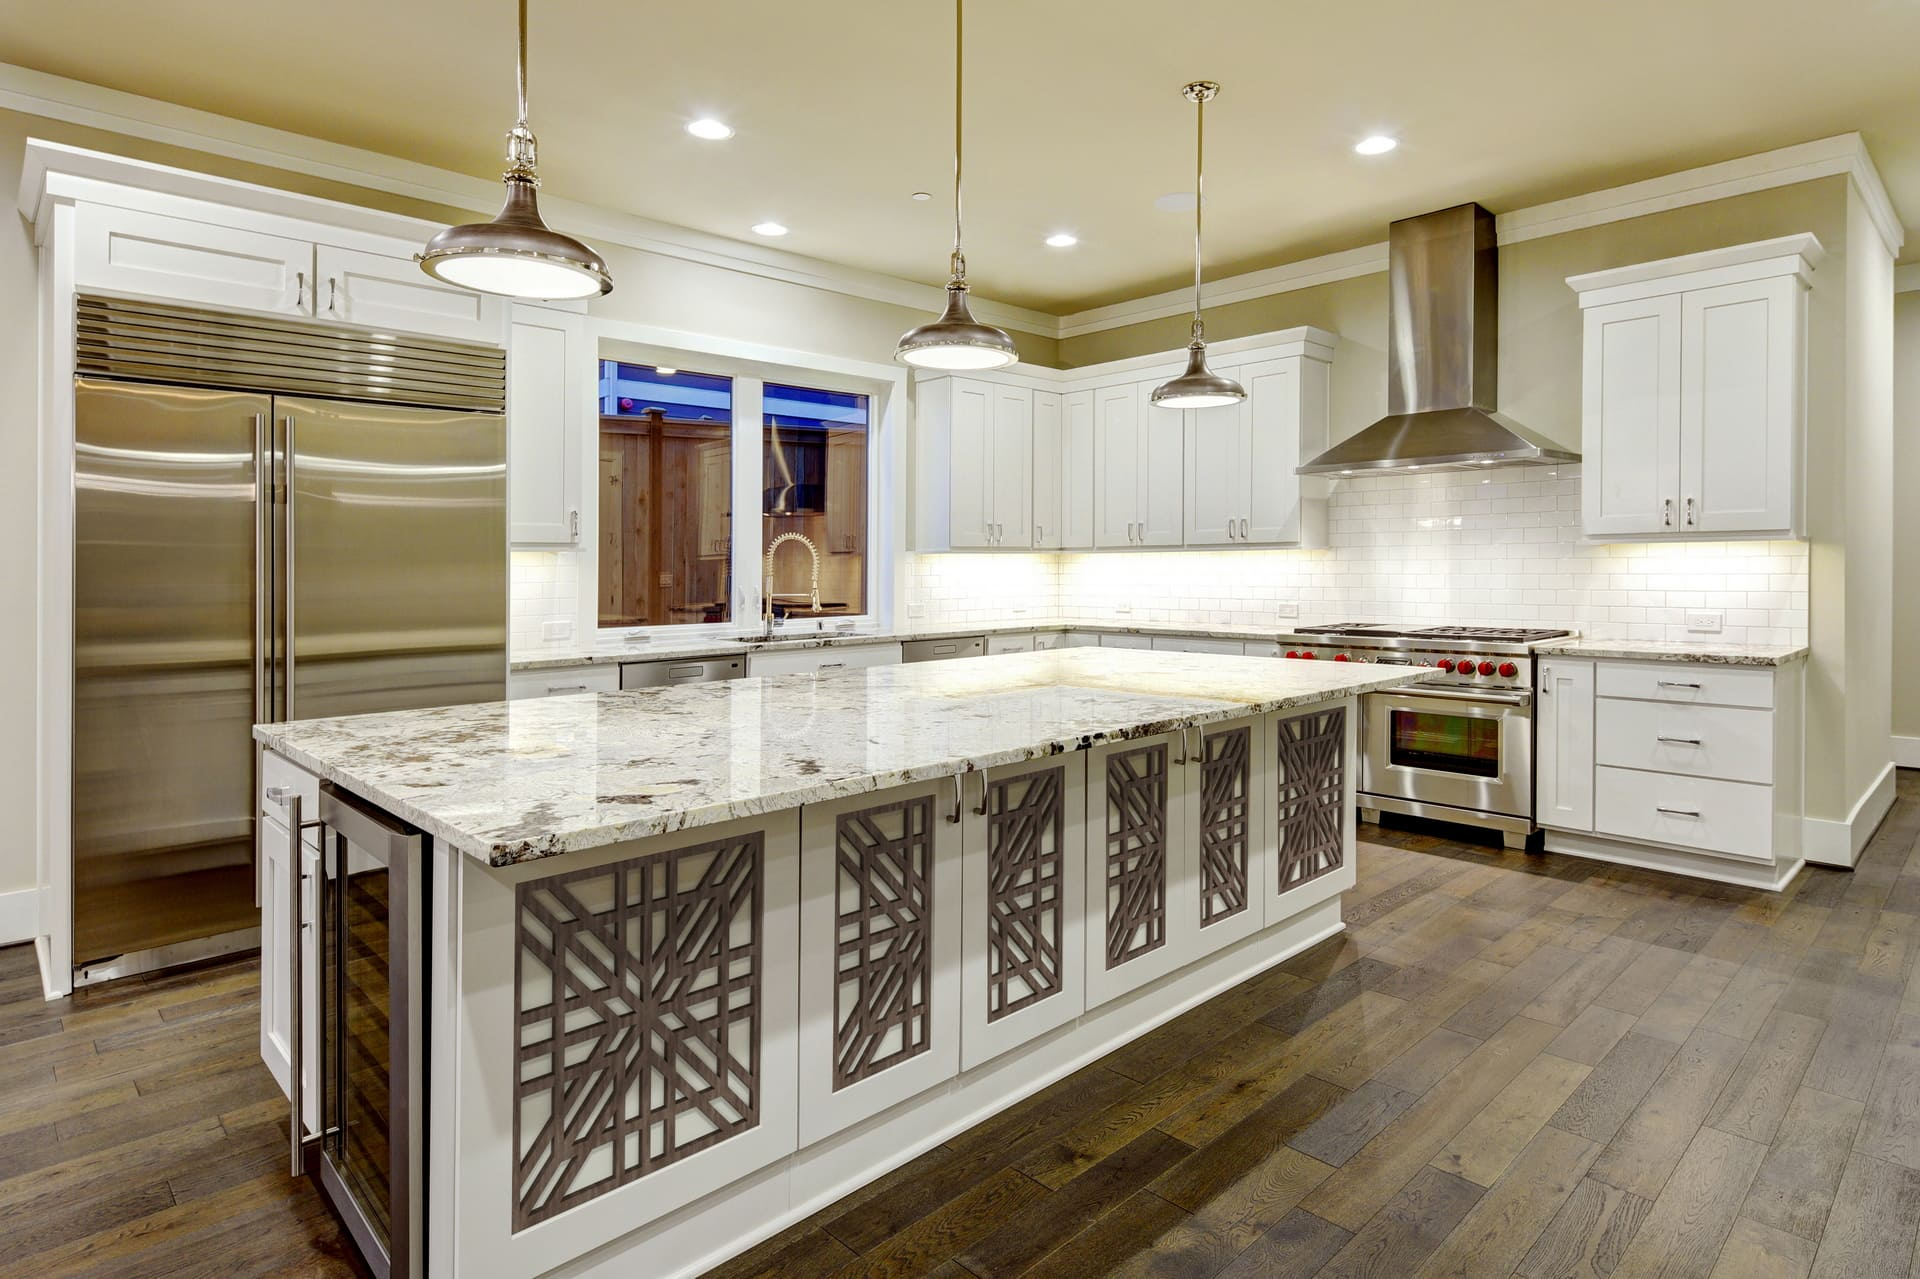 tableaux decorative grilles decorative accent used in kitchen cabinetry